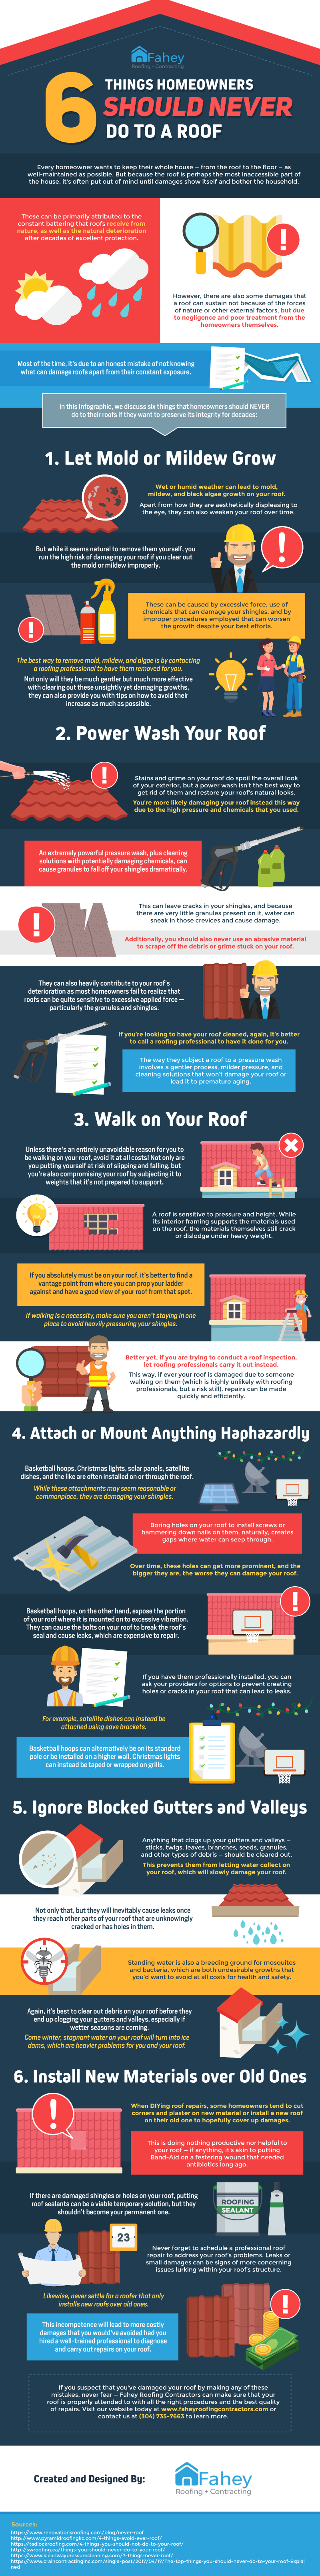 6 Things Homeowners Should Never Do To A Roof [Infographic]